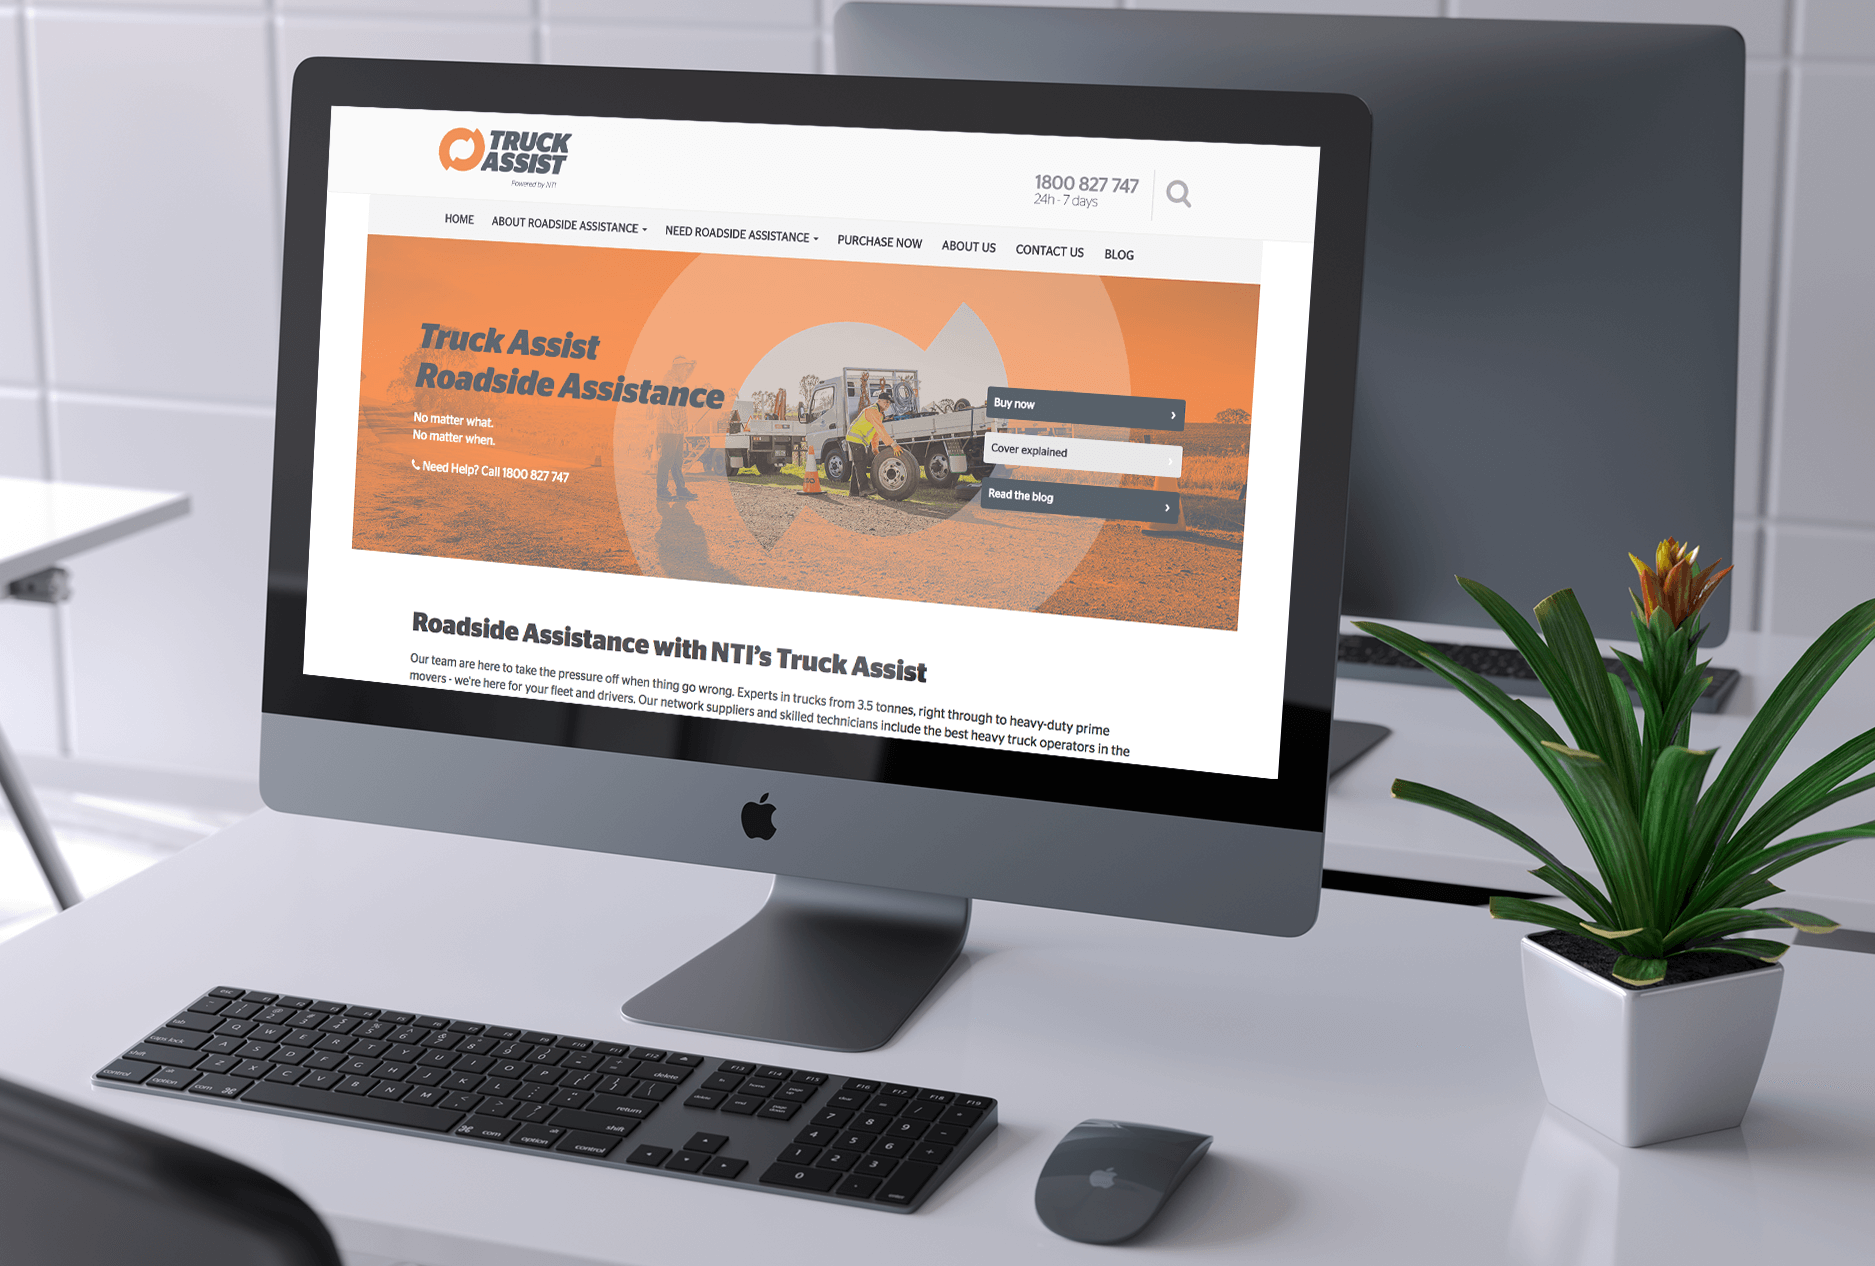 TruckAssist Website, SEO Brisbane, Web Apps Brisbane, Creative Curiosity, Graphic Design Brisbane, Web Design Brisbane, Web Development Brisbane, IT Services Brisbane